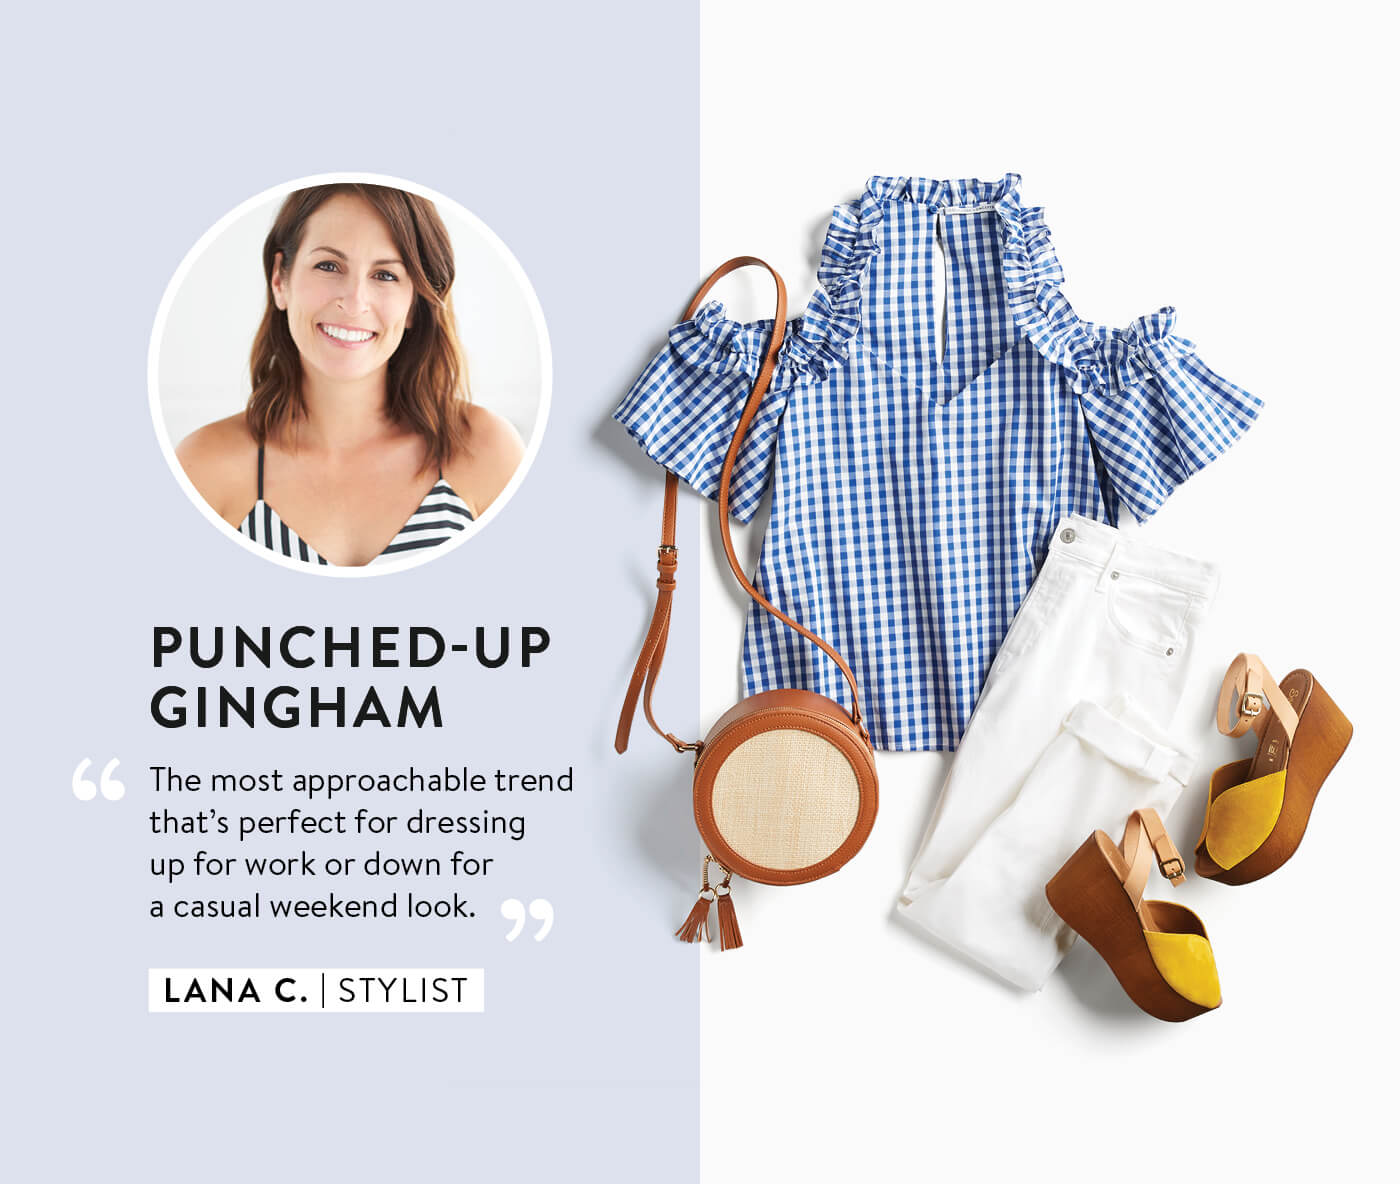 Stitch Fix Stylist Trends 2018